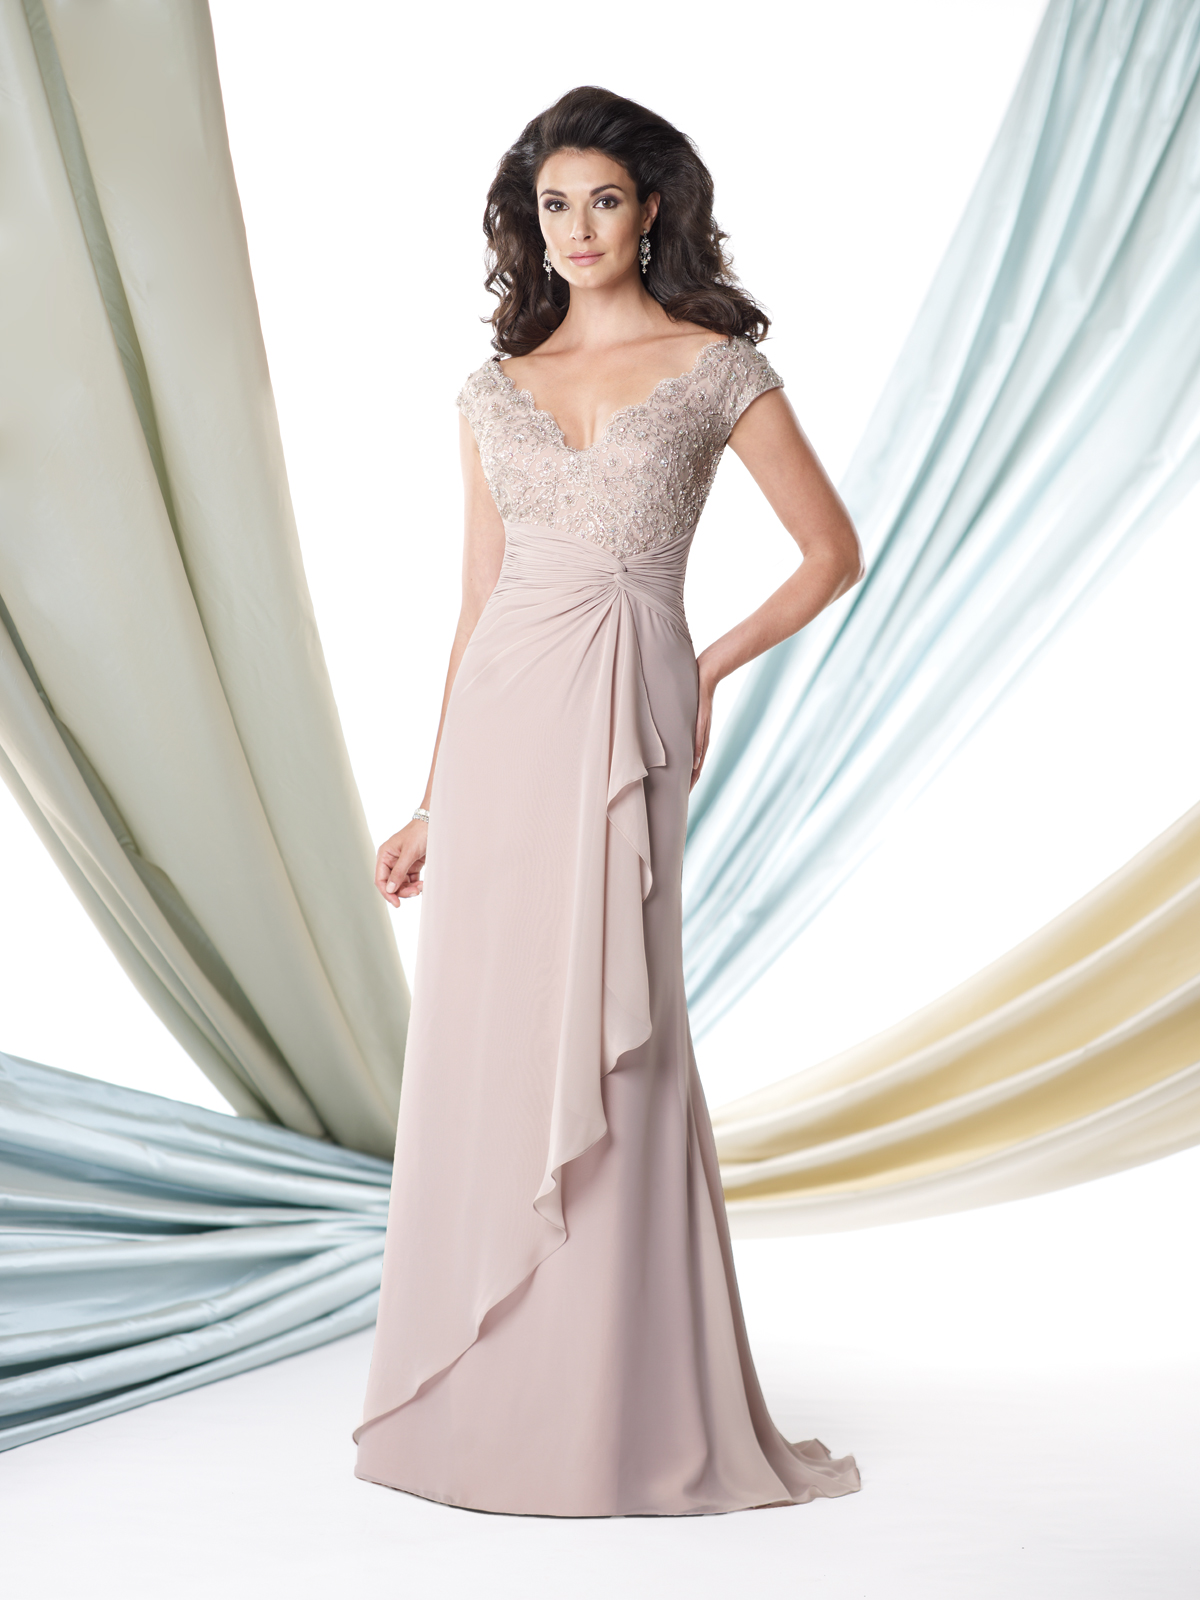 Special Mother Of The Bride And Groom Trunk Show June 3rd 5th